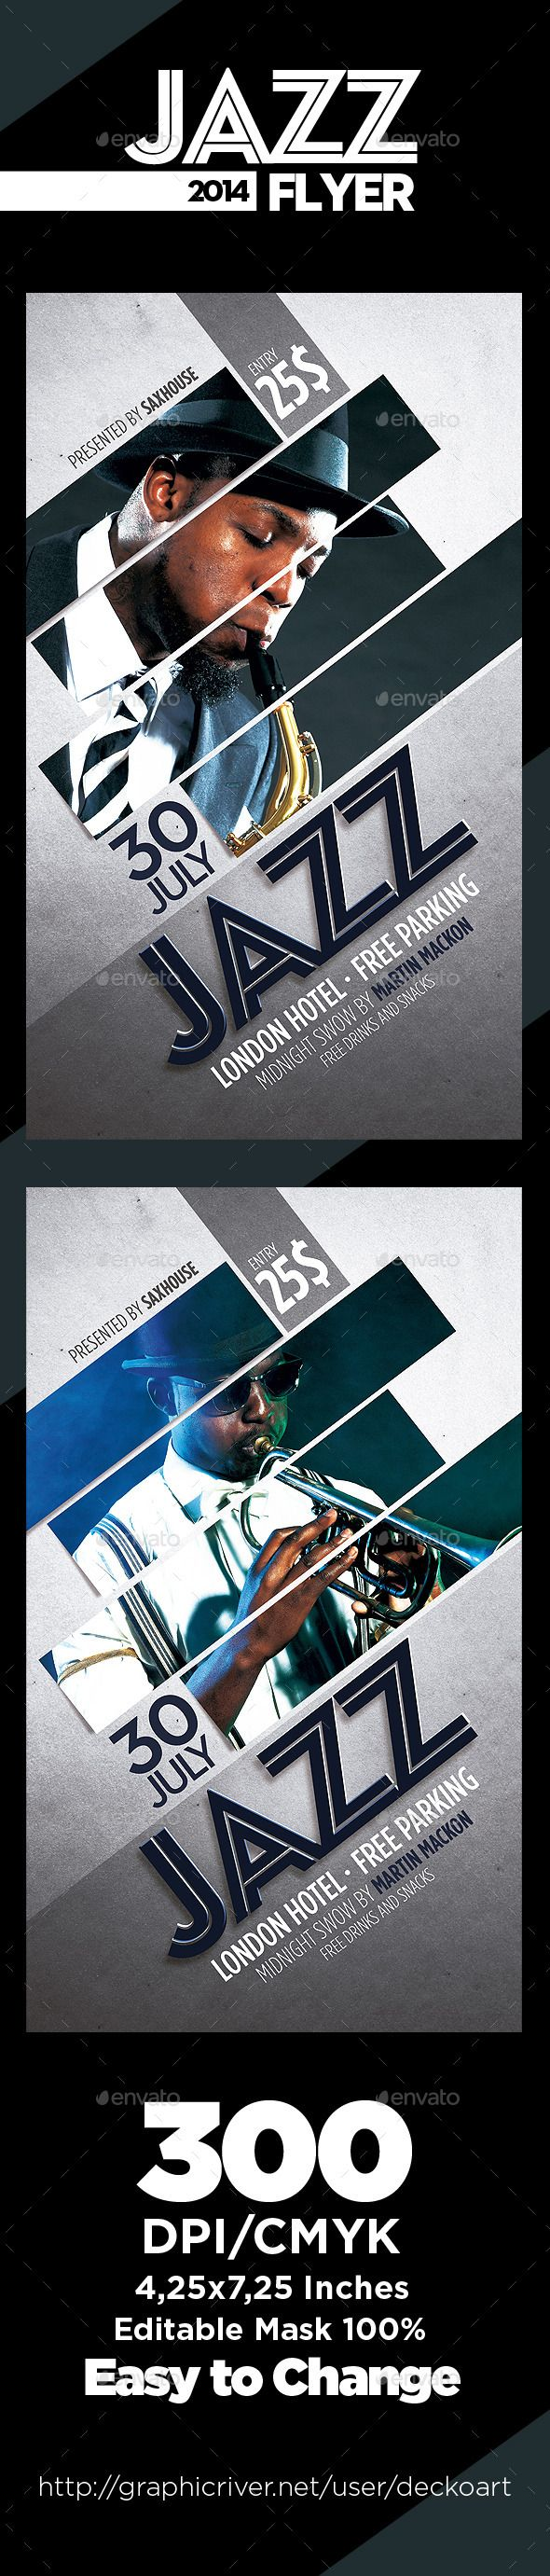 Jazz Flyer Template PSD | Buy and Download…